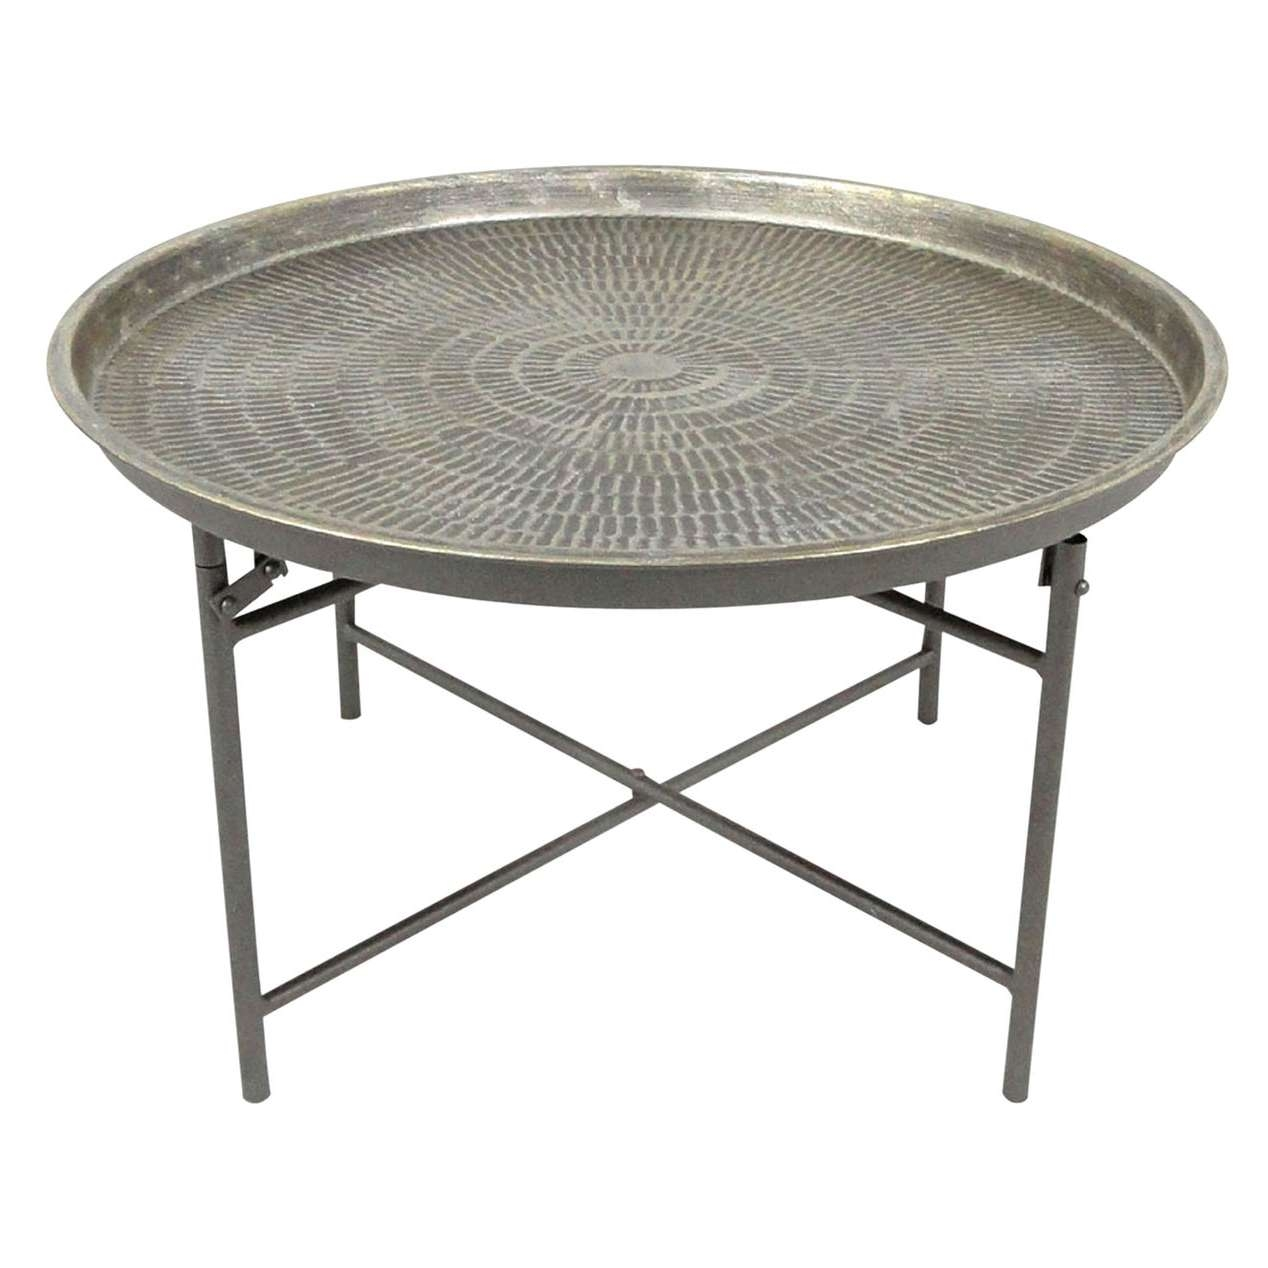 Uncategorized : Metal Round Coffee Table With Impressive Black Inside Newest Metal Round Coffee Tables (View 4 of 20)